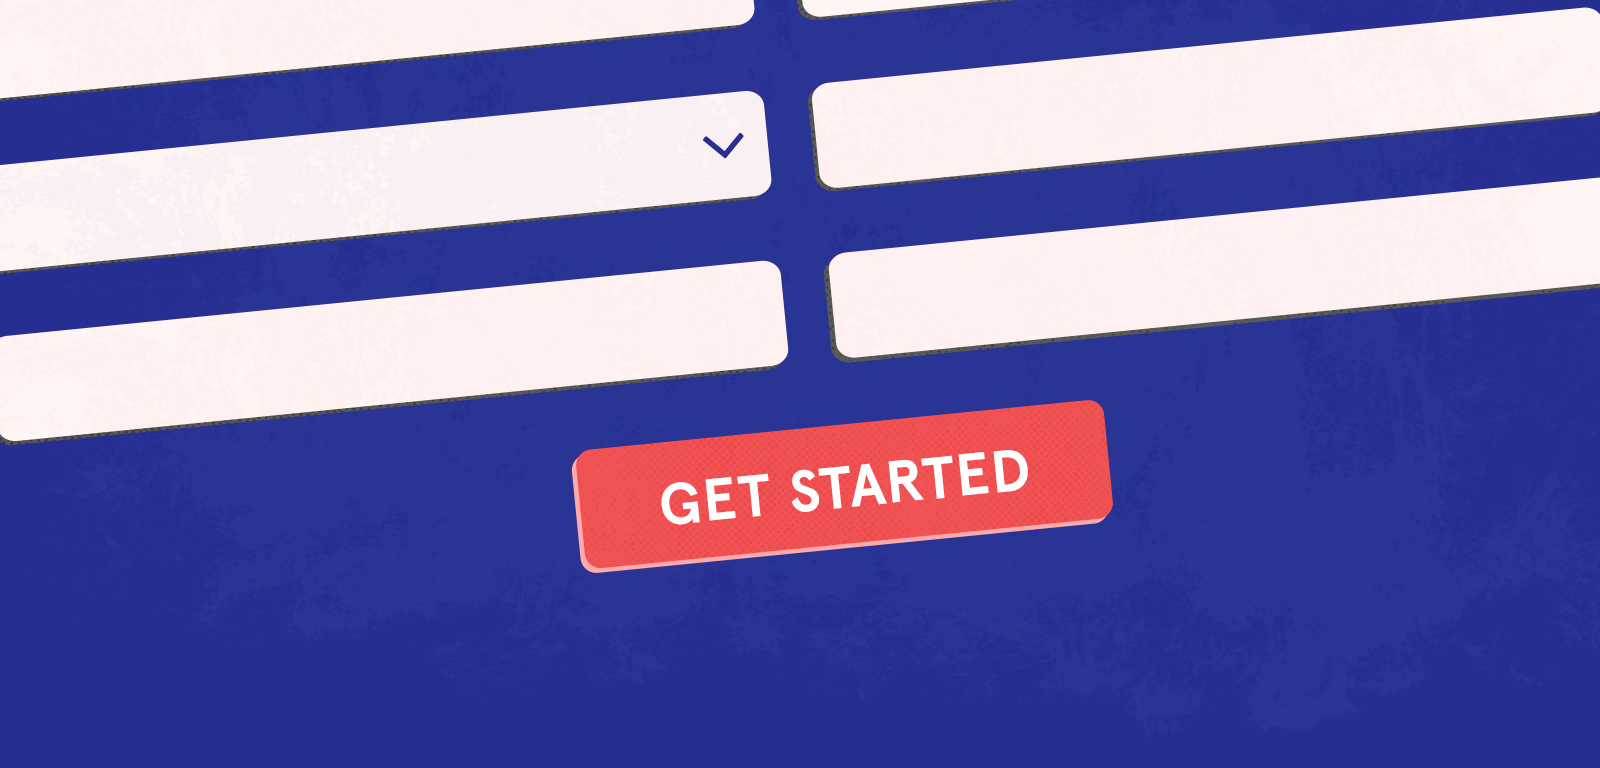 Landing Pages: What they are, why you need them, and best practices for conversion - Volt